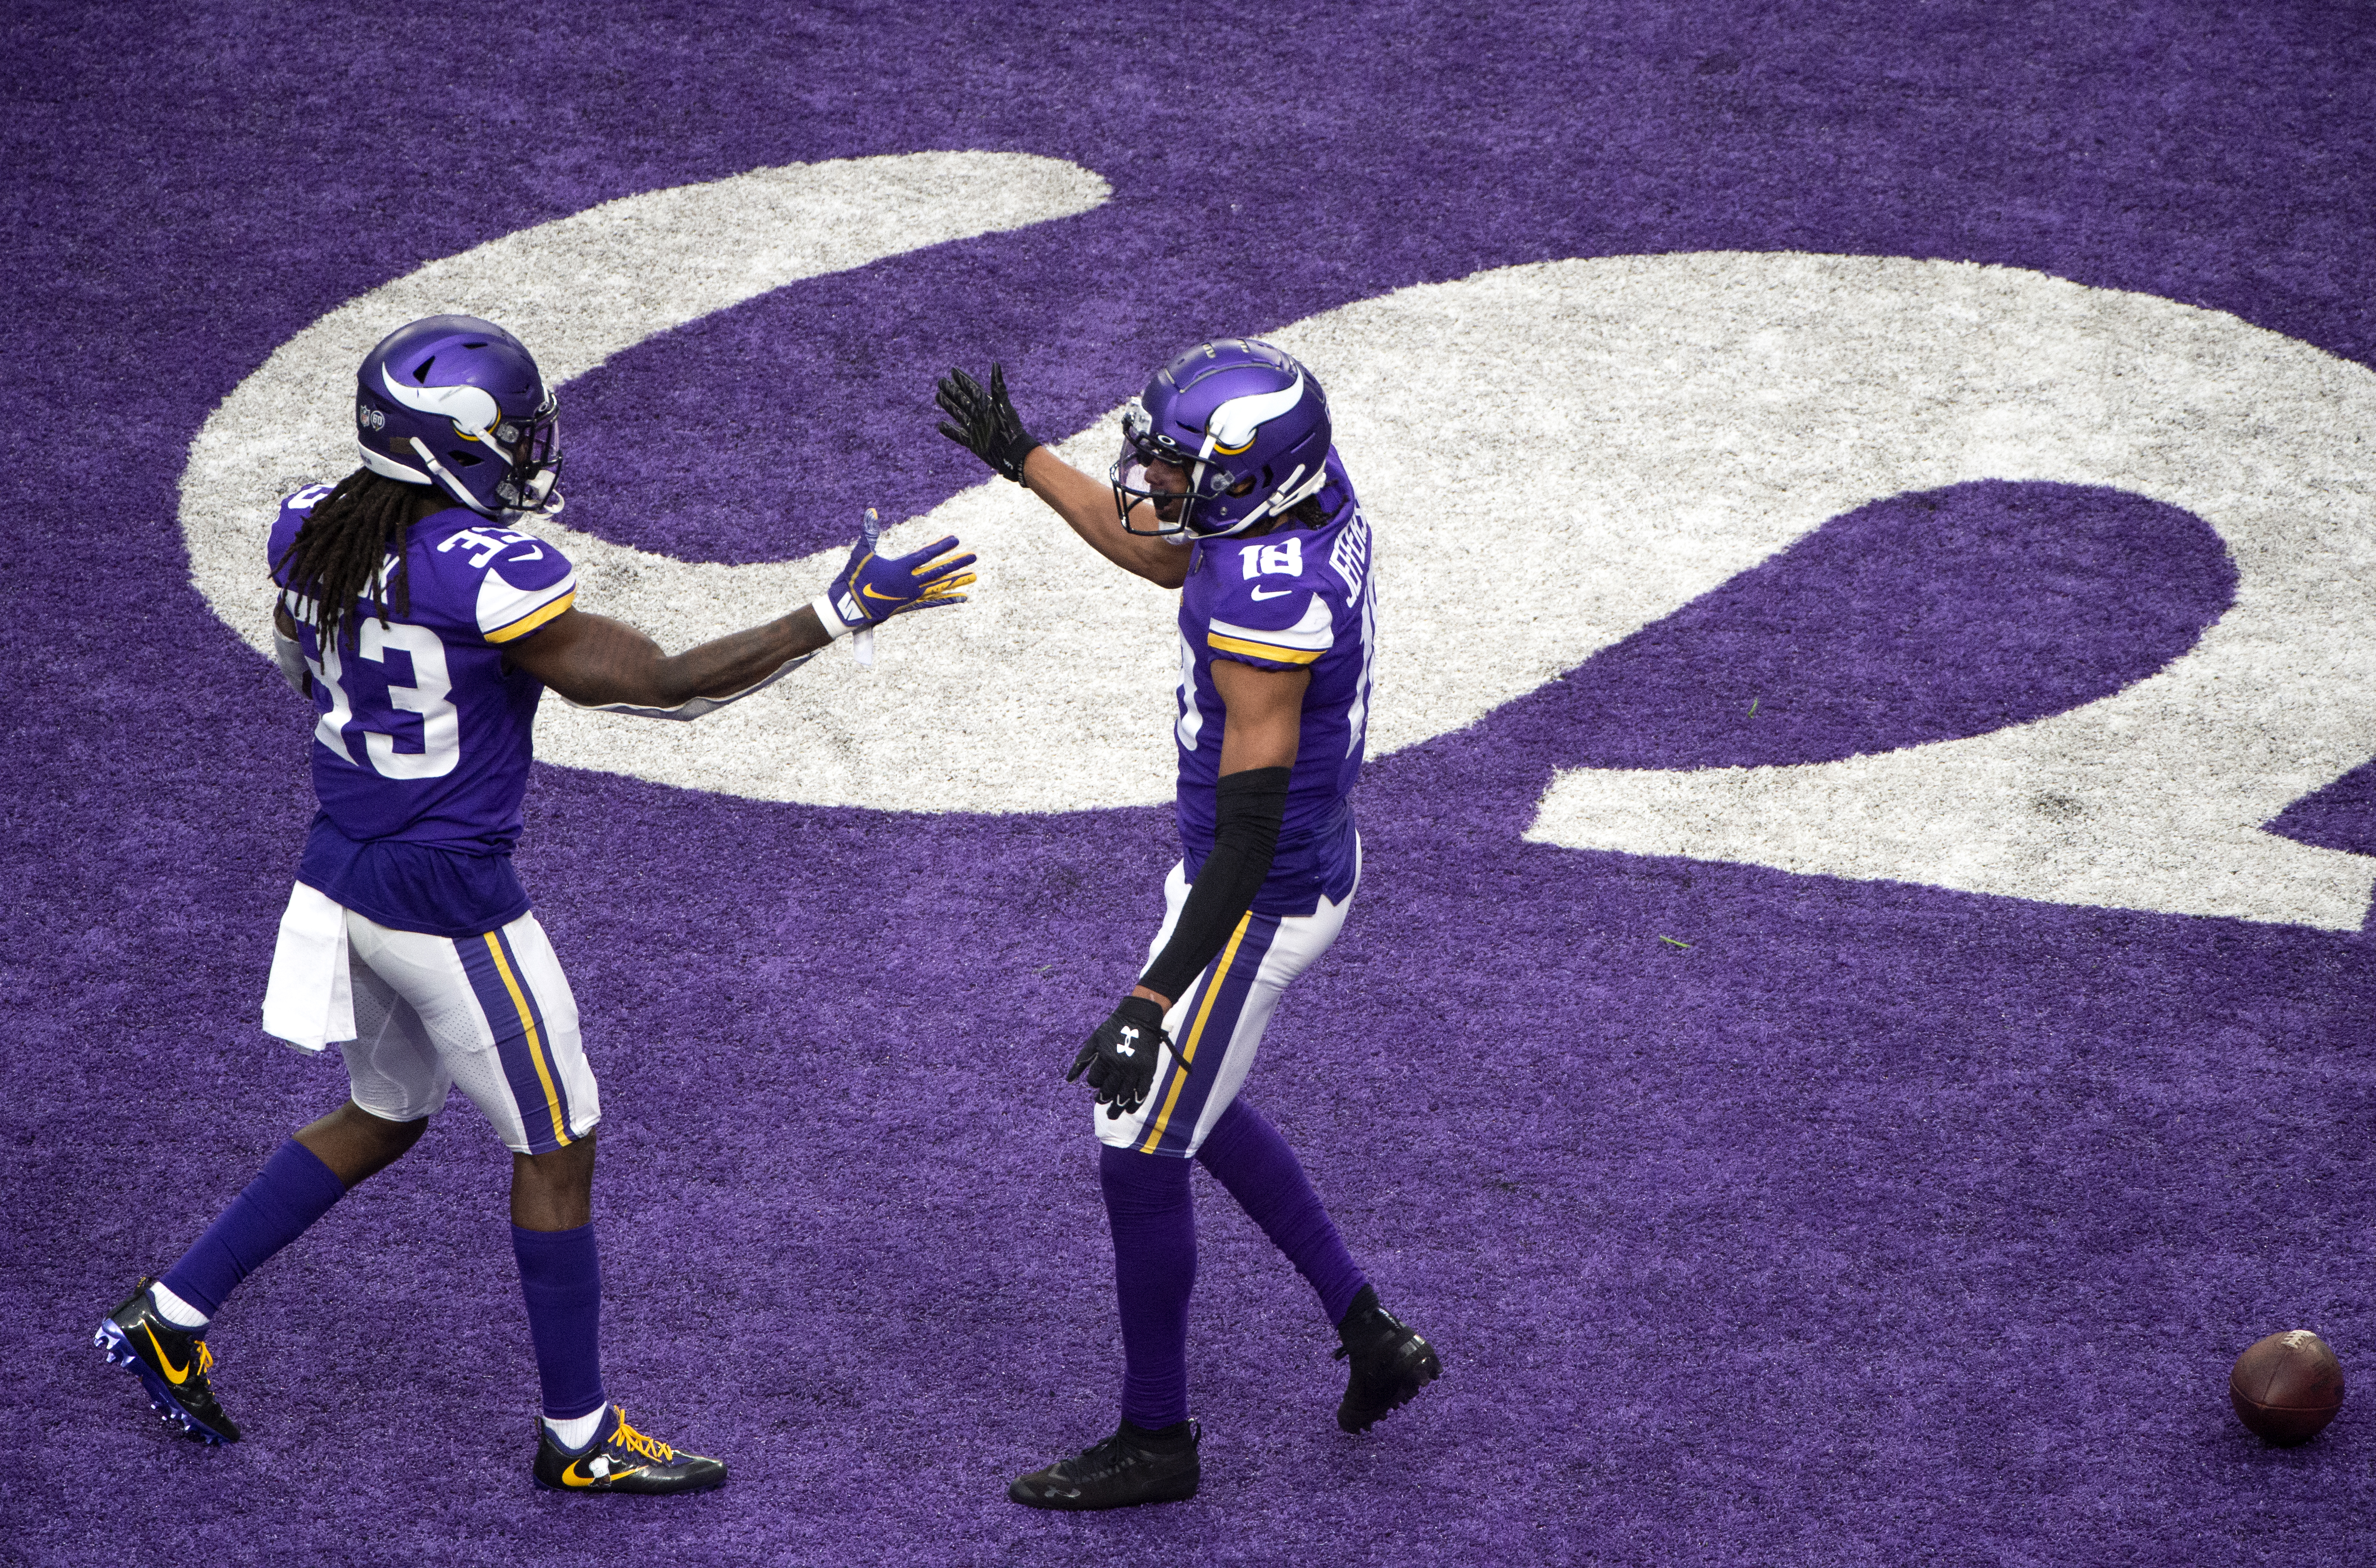 Justin Jefferson #18 celebrates with Dalvin Cook #33 of the Minnesota Vikings after scoring touchdown in the third quarter of the game against the Jacksonville Jaguars at U.S. Bank Stadium on December 6, 2020 in Minneapolis, Minnesota.